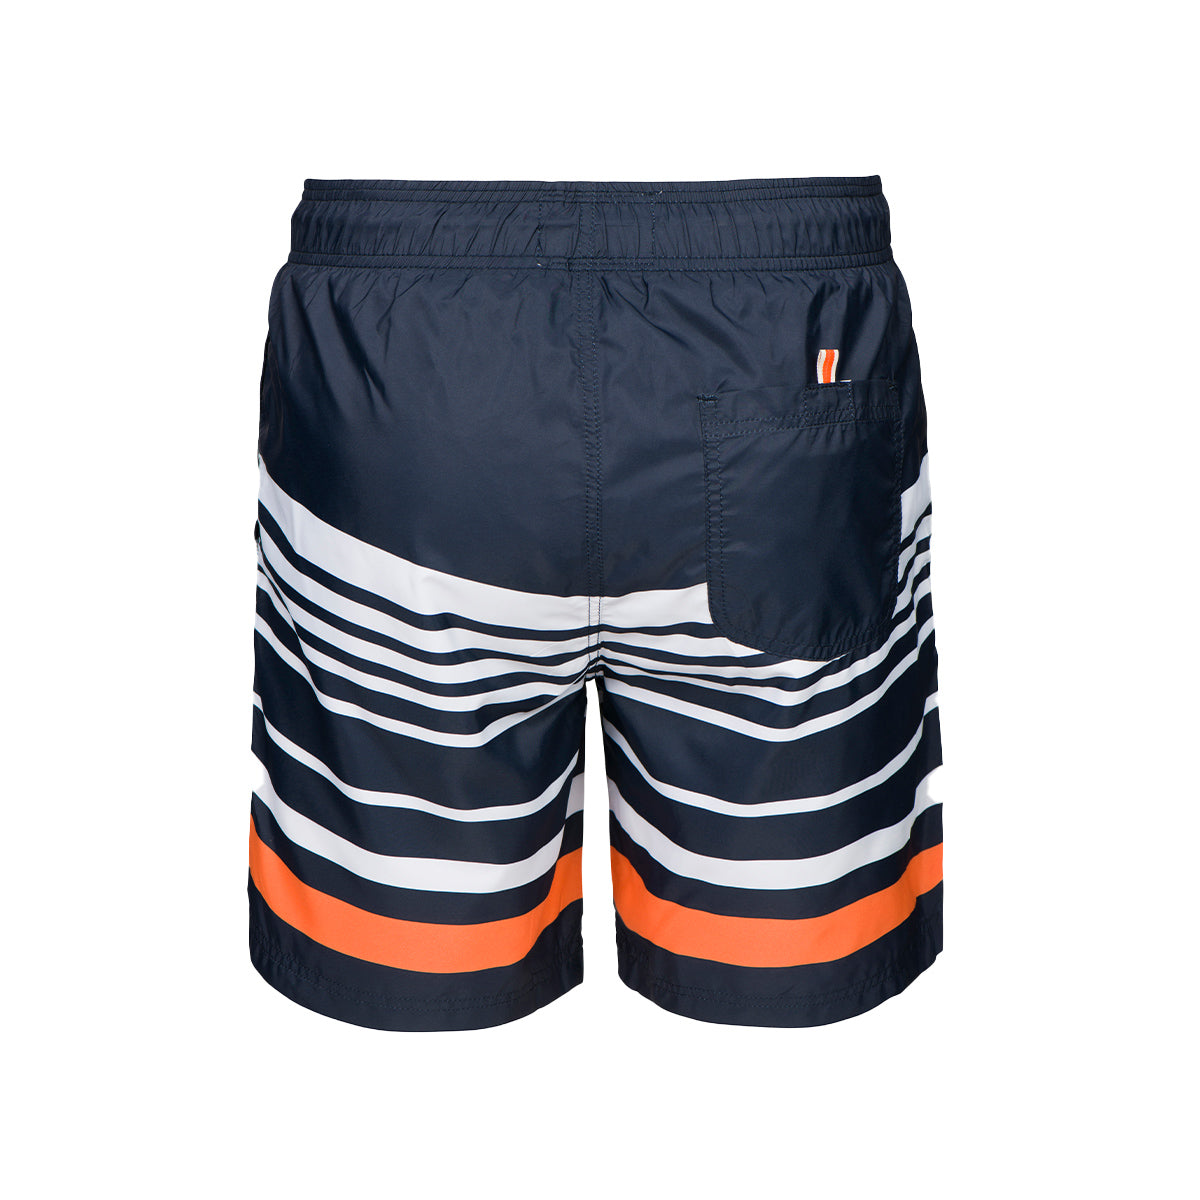 Lucea Logo Bathing Shorts - background::white,variant::blue